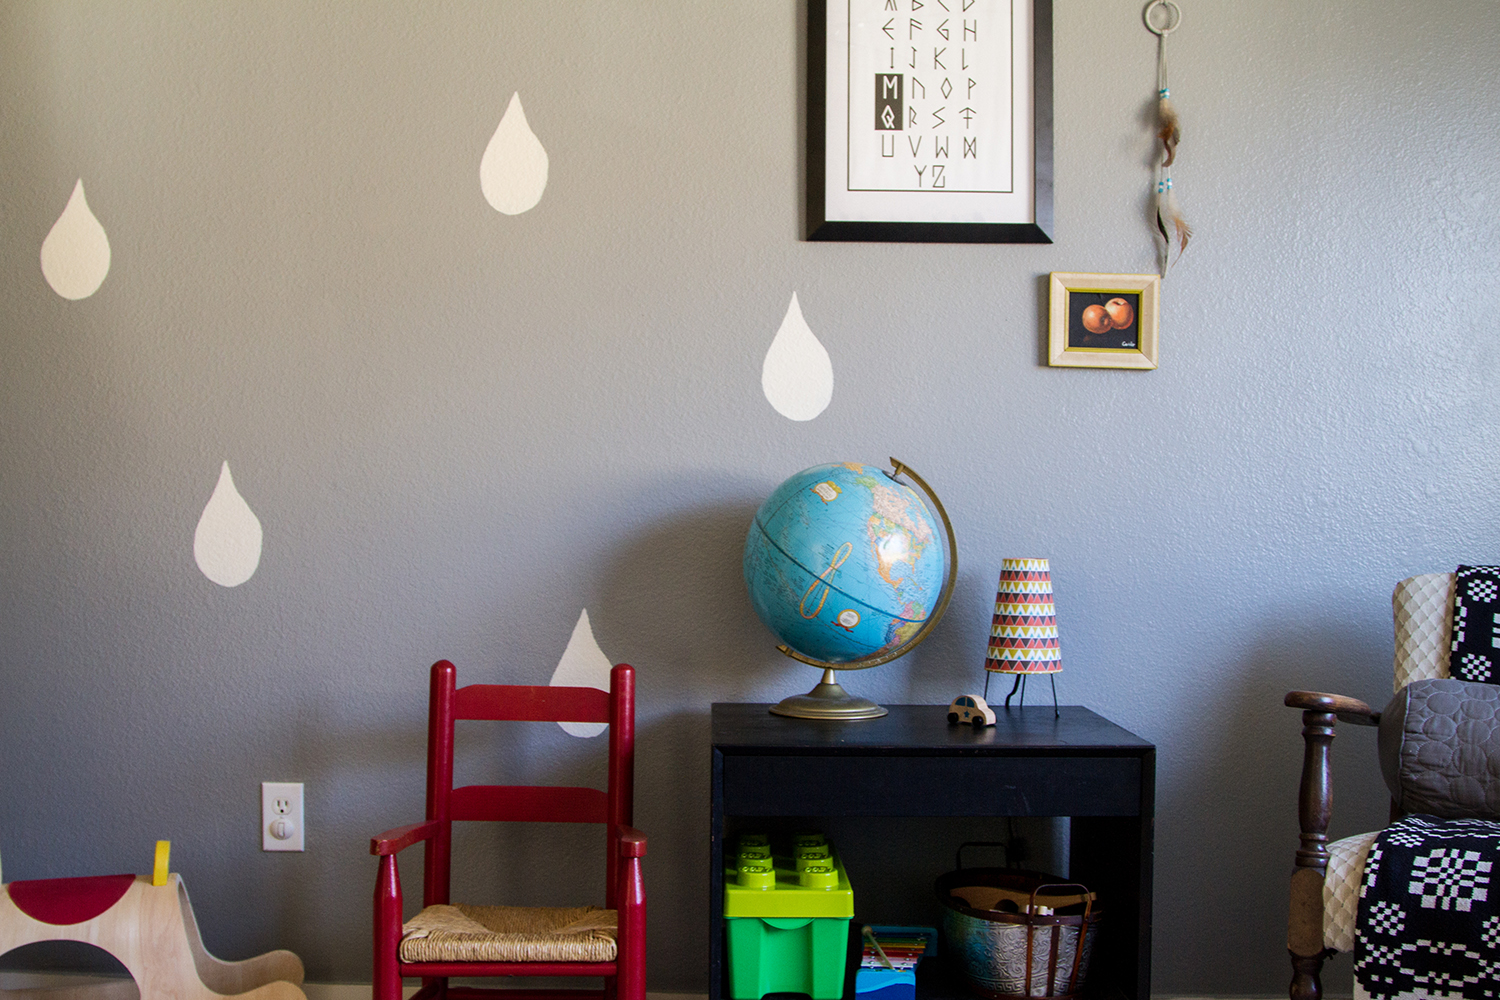 Amanda's 2-year-old son Miner's room is definitely a reflection of his mom & dad's artistic backgrounds.